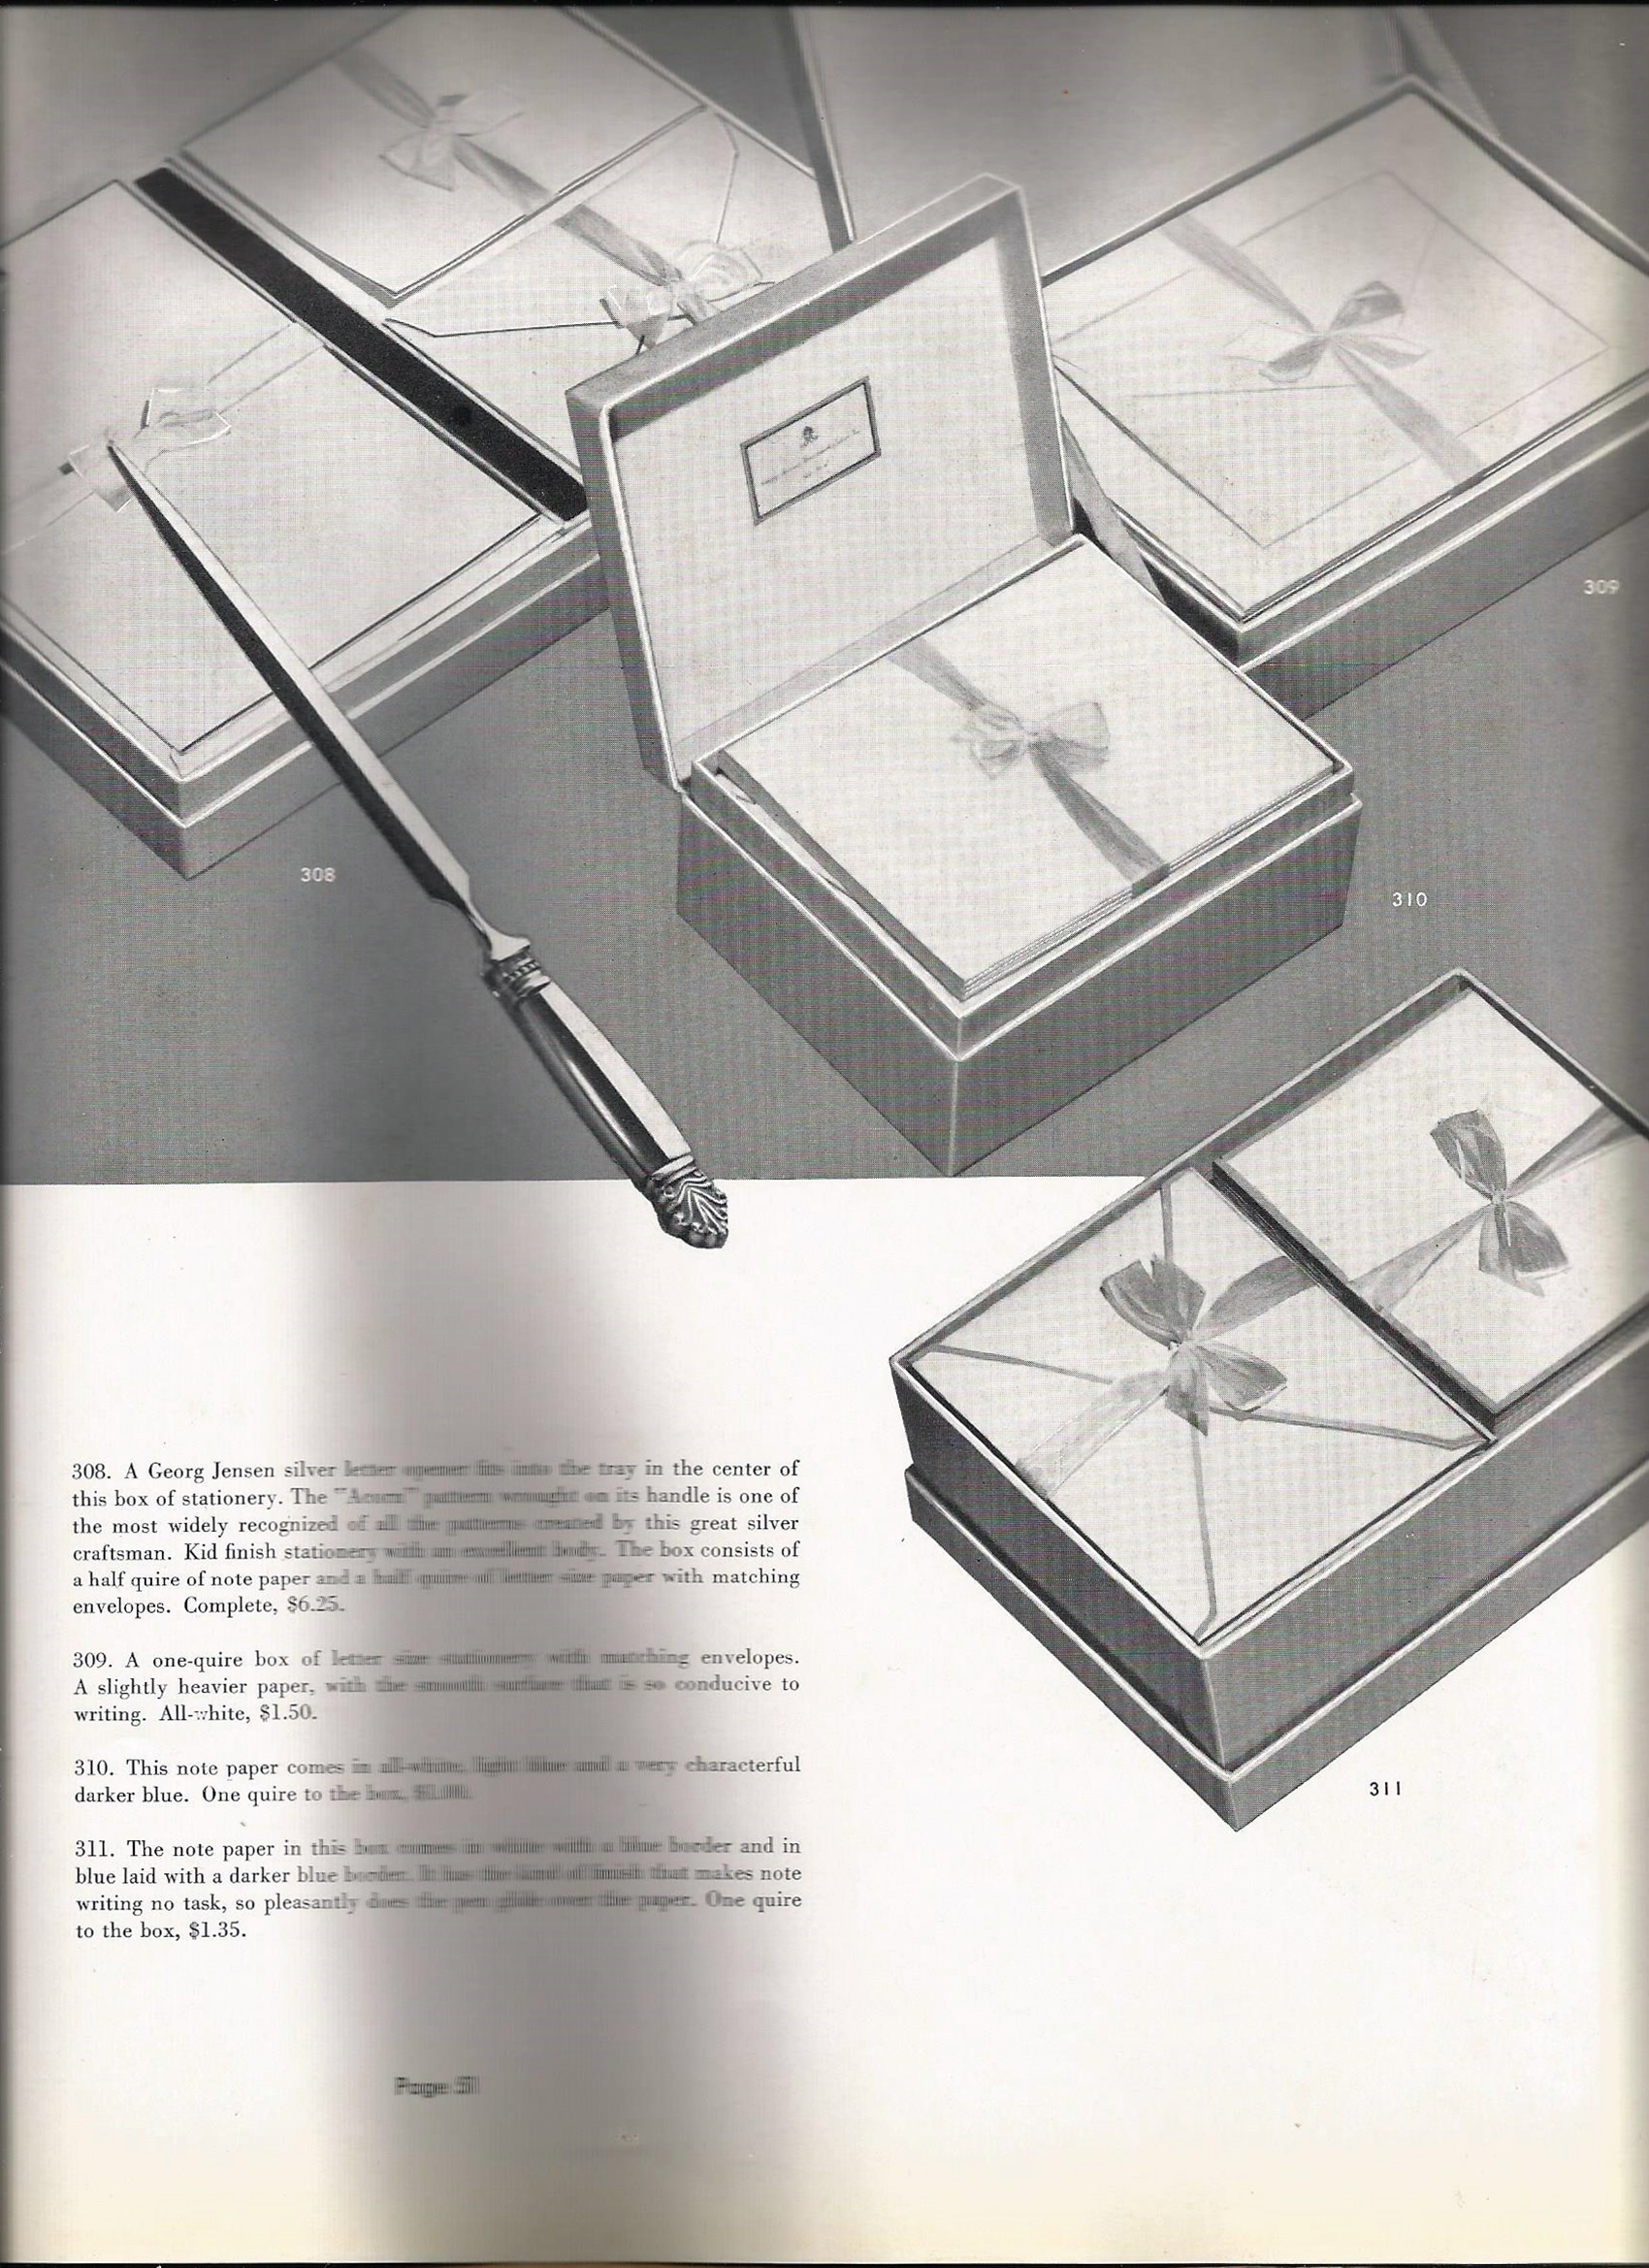 On this page, another exquisite Georg Jensen piece, an Acanthus letteropener is displayed among the stationery items.